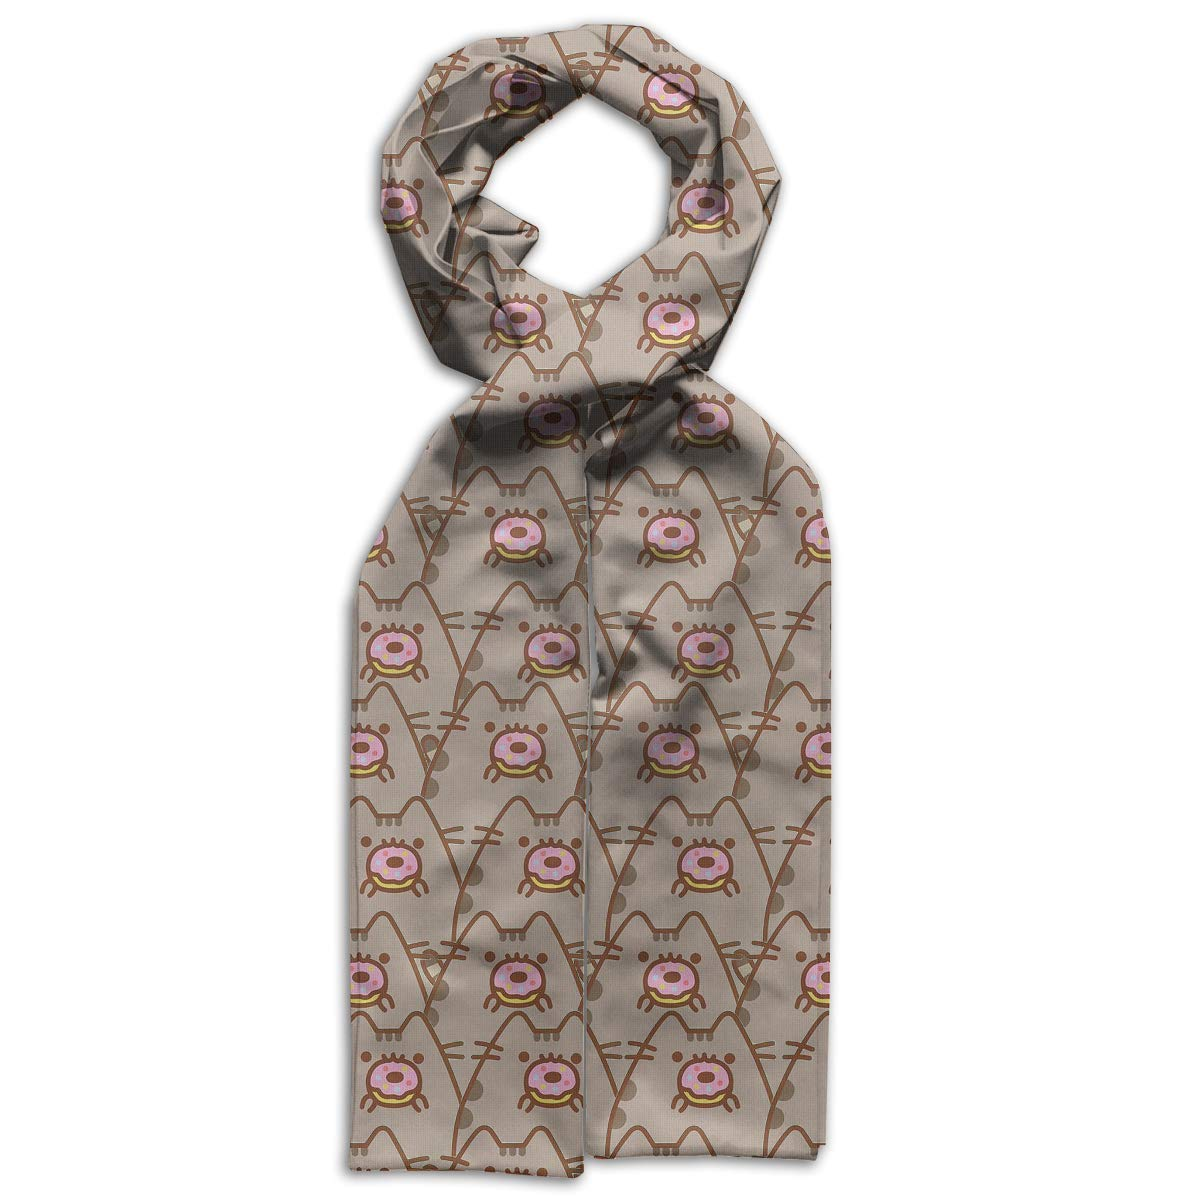 Eating Doughnuts Cats Kids Printed Scarf Cute Winter Infinity Scarf Warmer Travel Scarf For Kids Perfect Birthday Gift